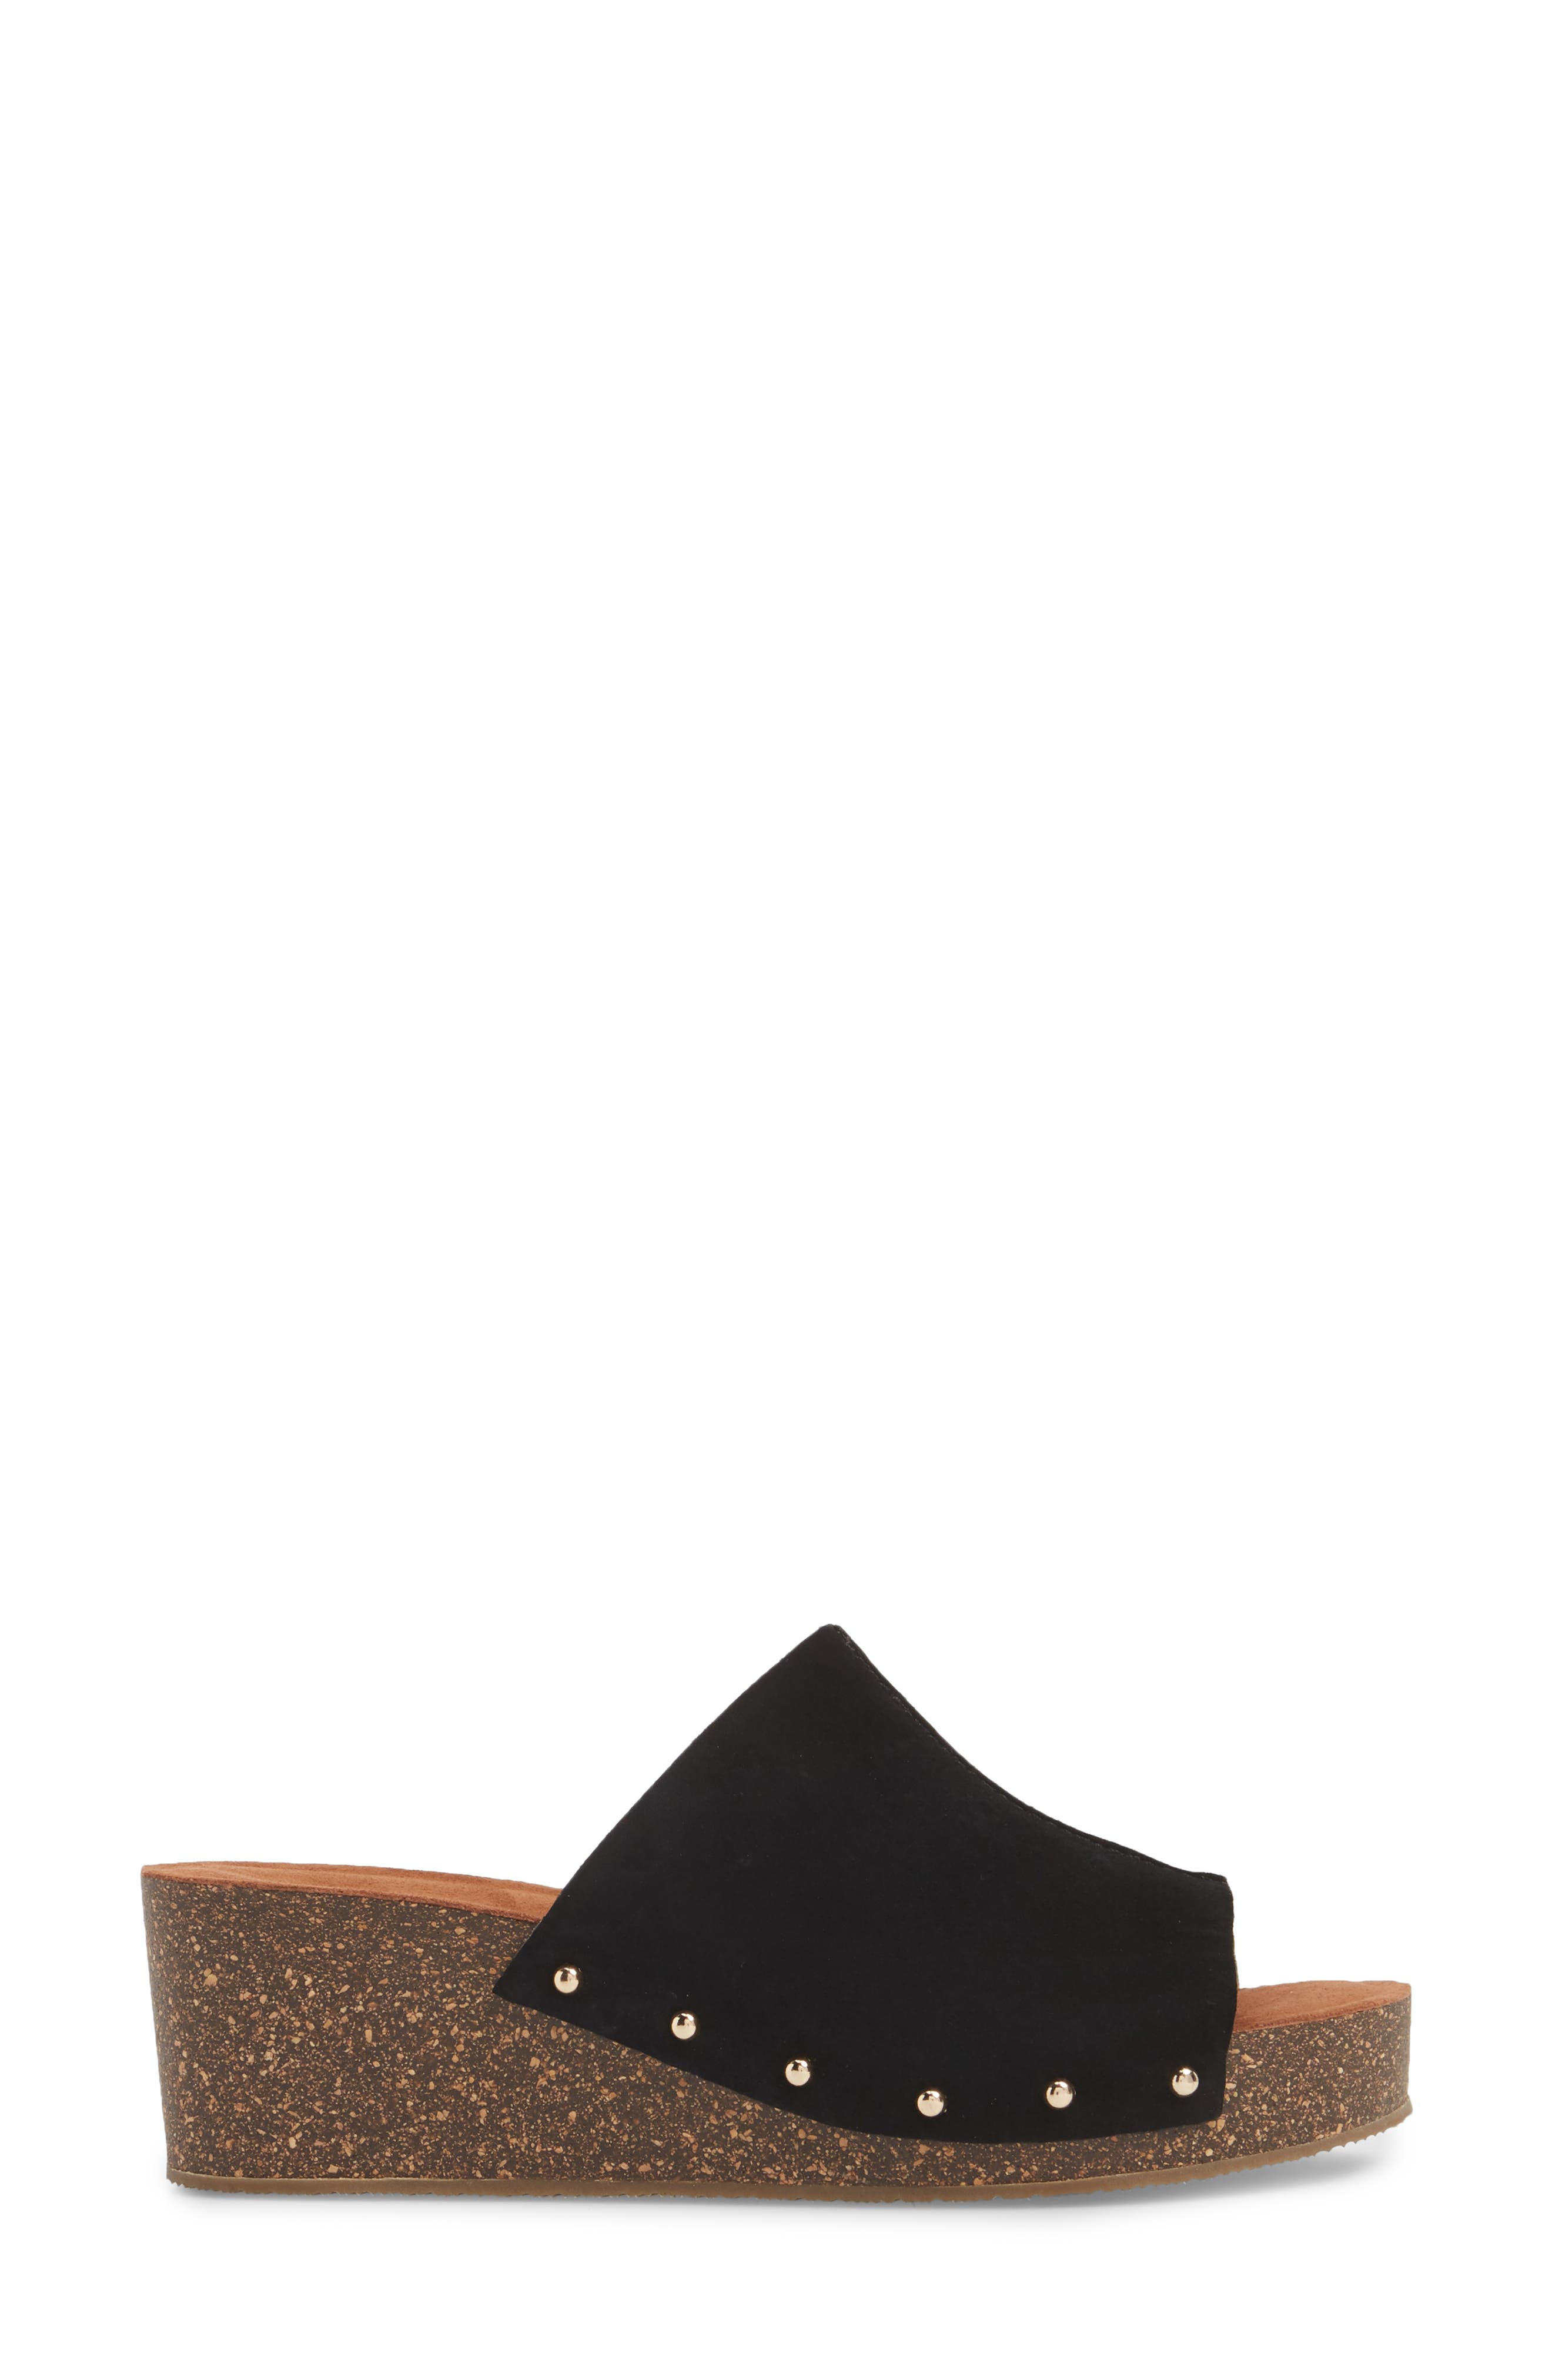 Pavia Wedge Mule,                             Alternate thumbnail 3, color,                             001